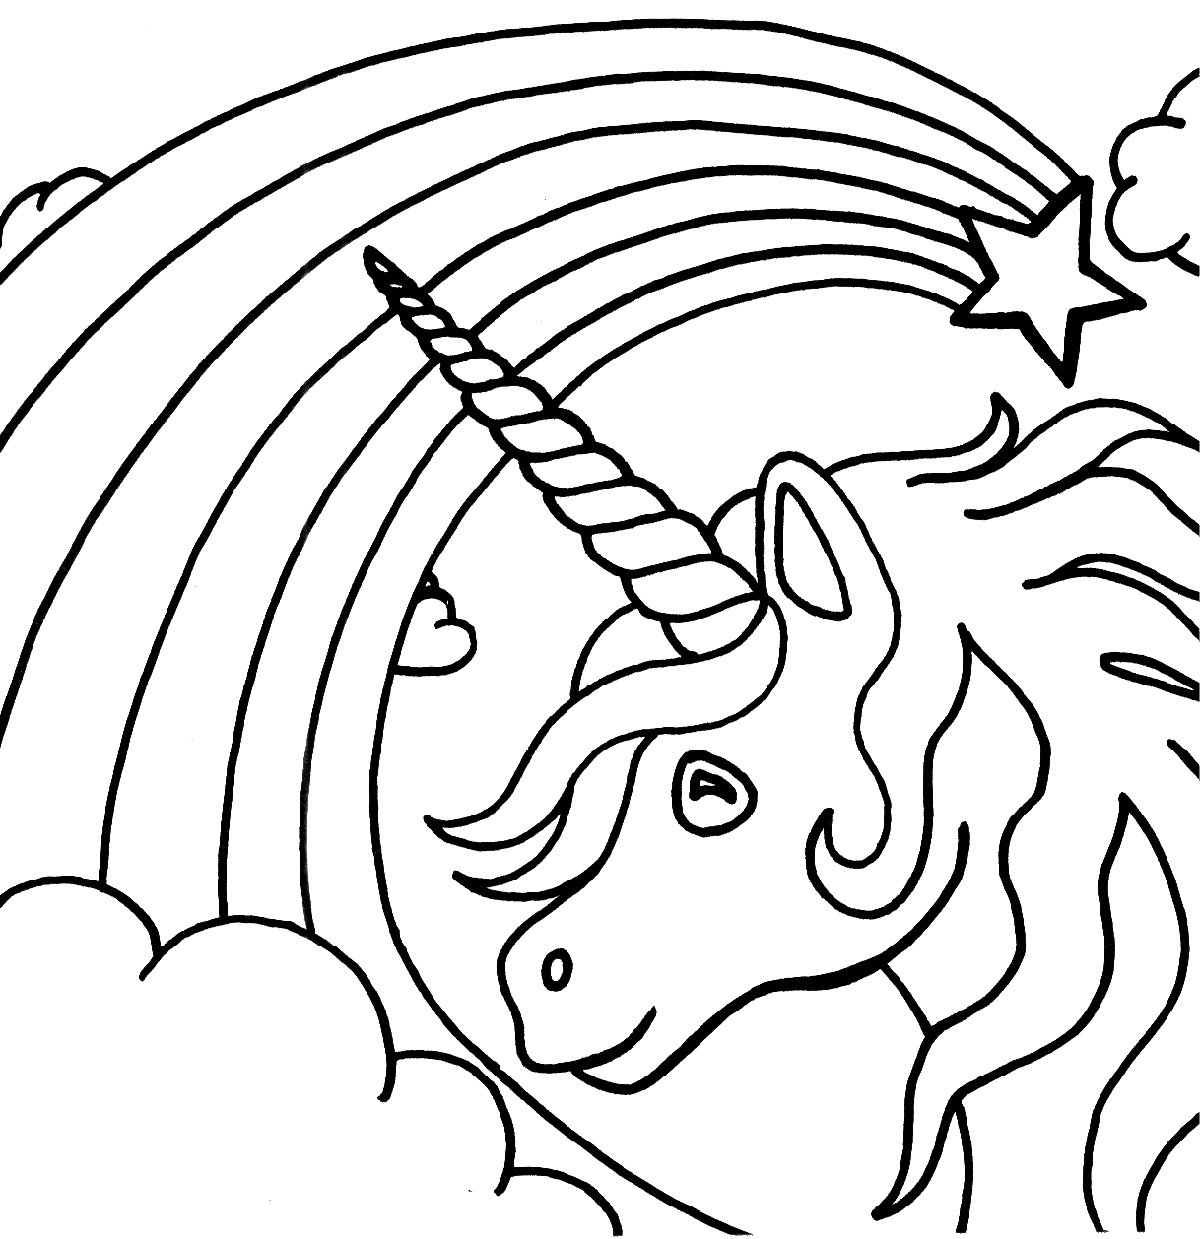 Unicorn Rainbow Coloring Pages Usable | Educative Printable